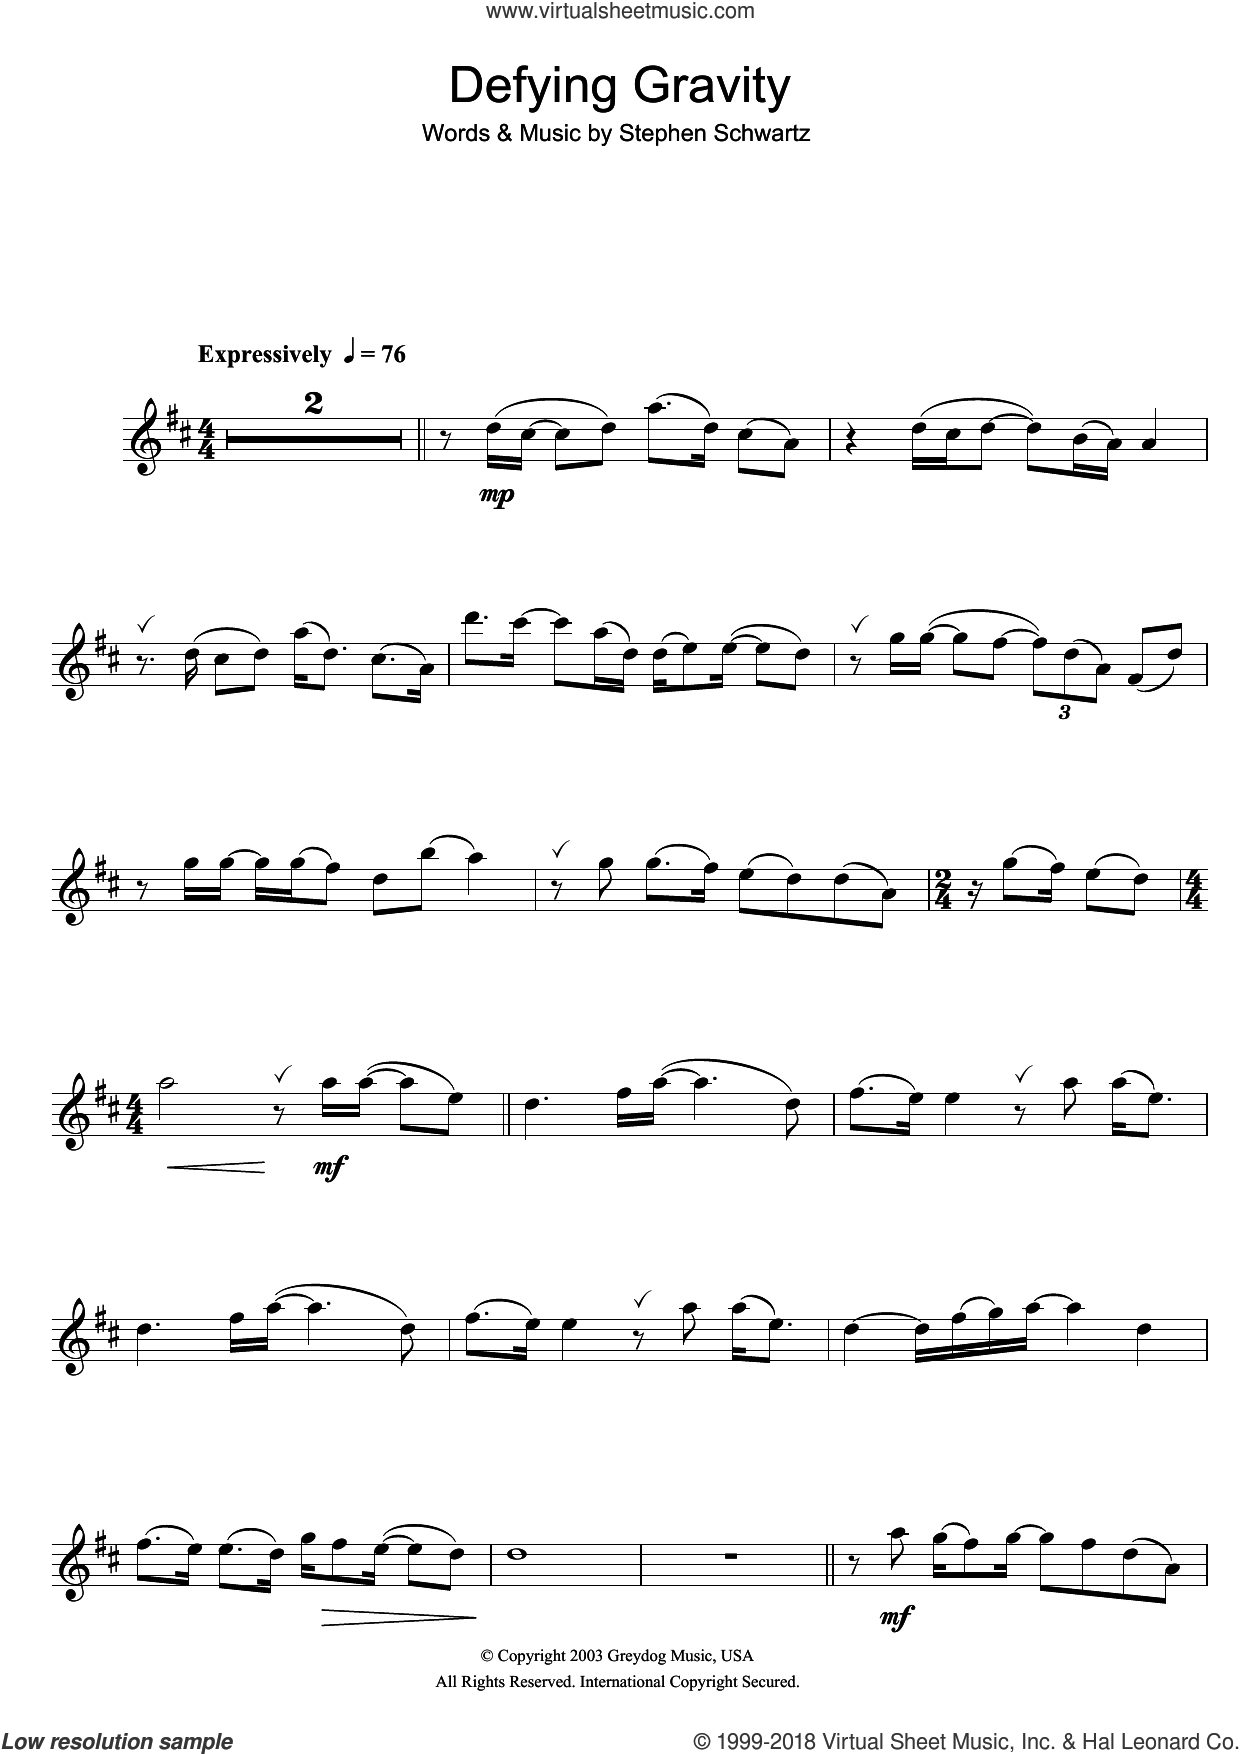 Defying Gravity (from the Broadway Musical Wicked) sheet music for flute solo by Glee Cast and Stephen Schwartz, intermediate skill level